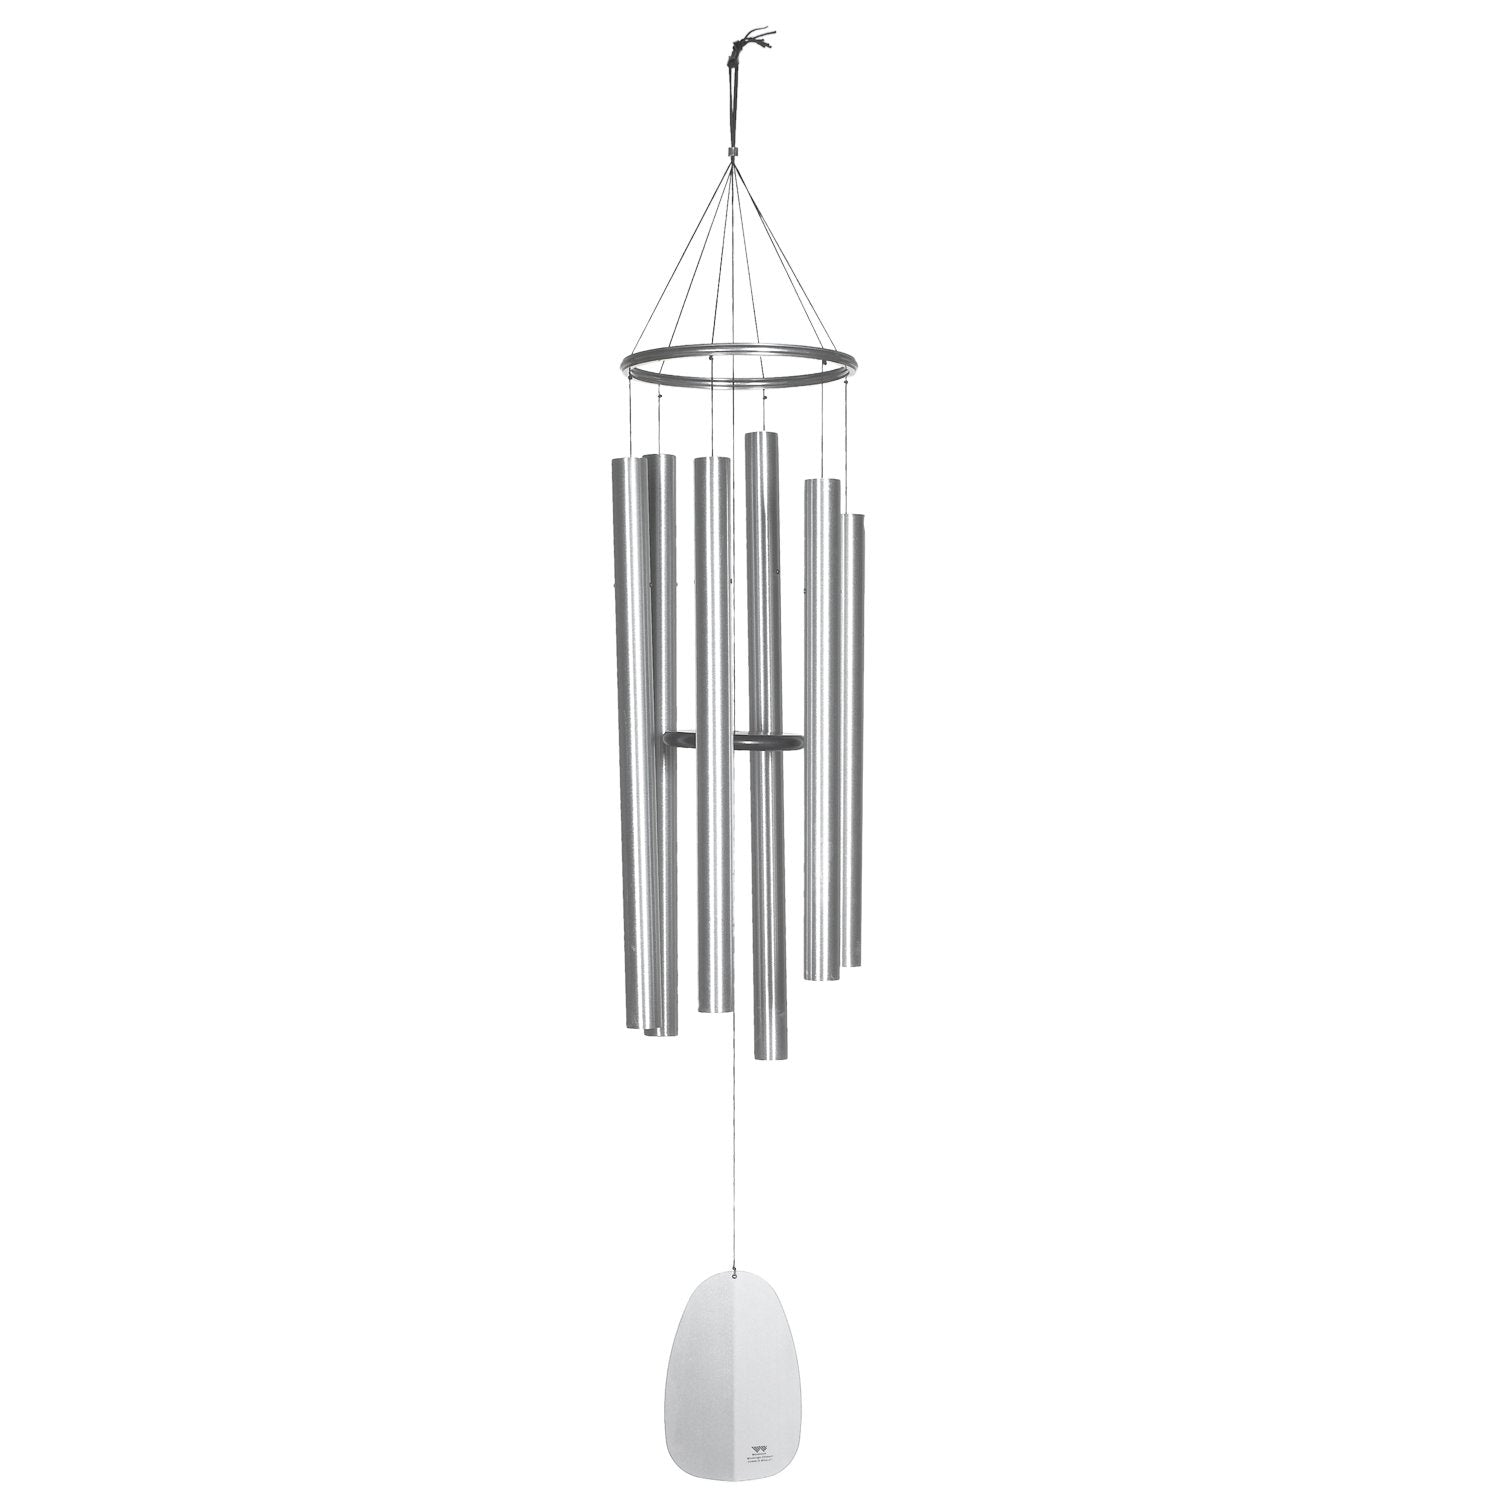 Windsinger Chimes of Apollo - Silver full product image